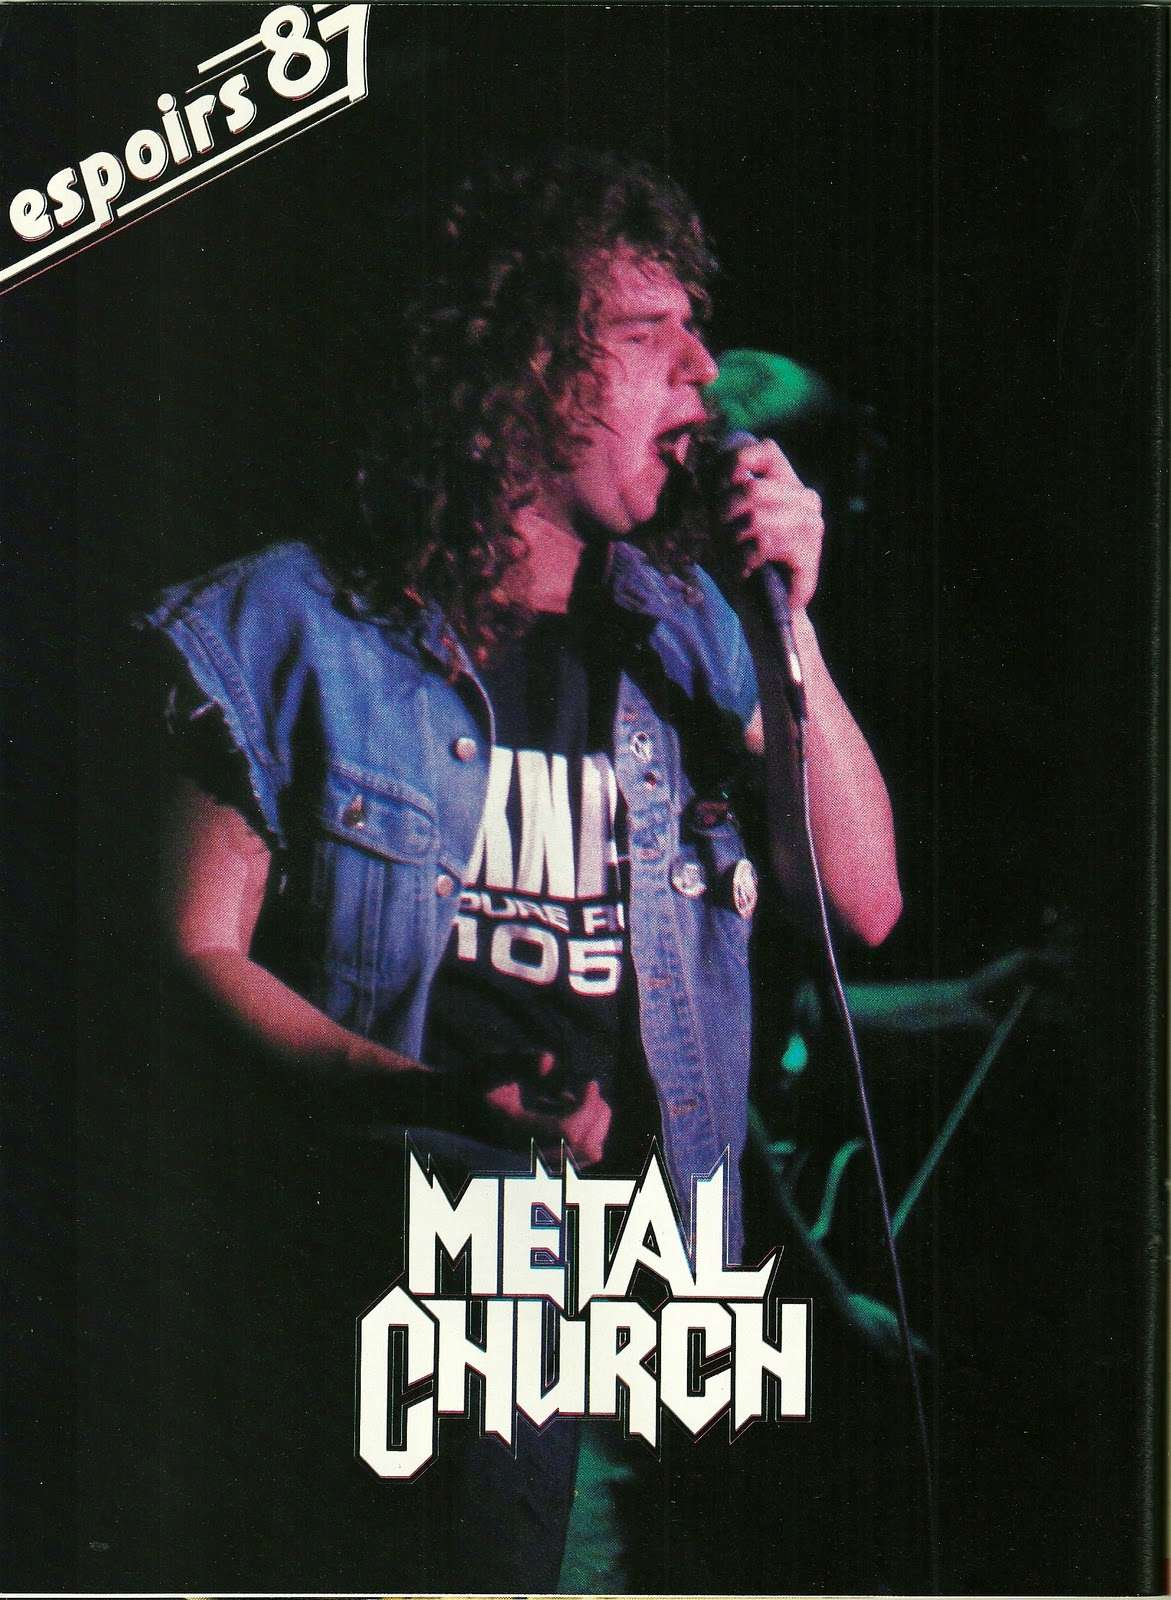 METAL CHURCH ... espoirs 87 (Enfer Magazine Février 1987) Archive à lire Numyri38